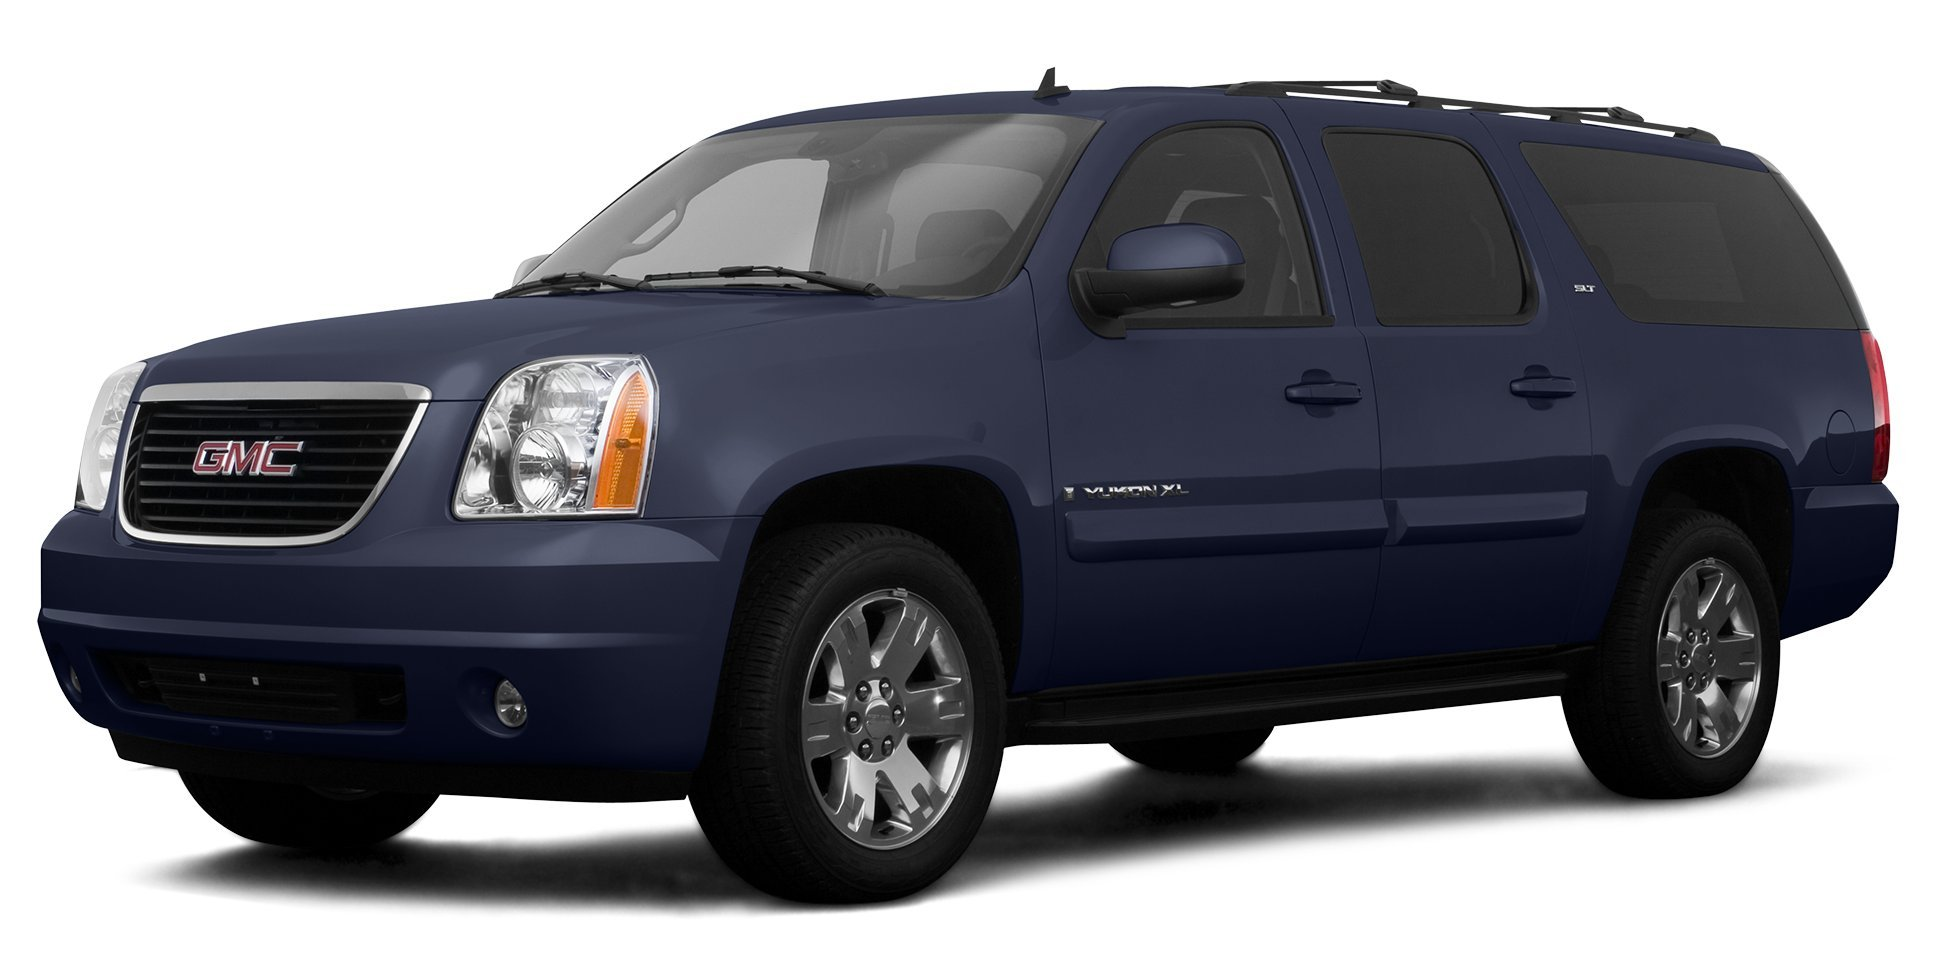 2008 gmc yukon xl 2500 reviews images and. Black Bedroom Furniture Sets. Home Design Ideas